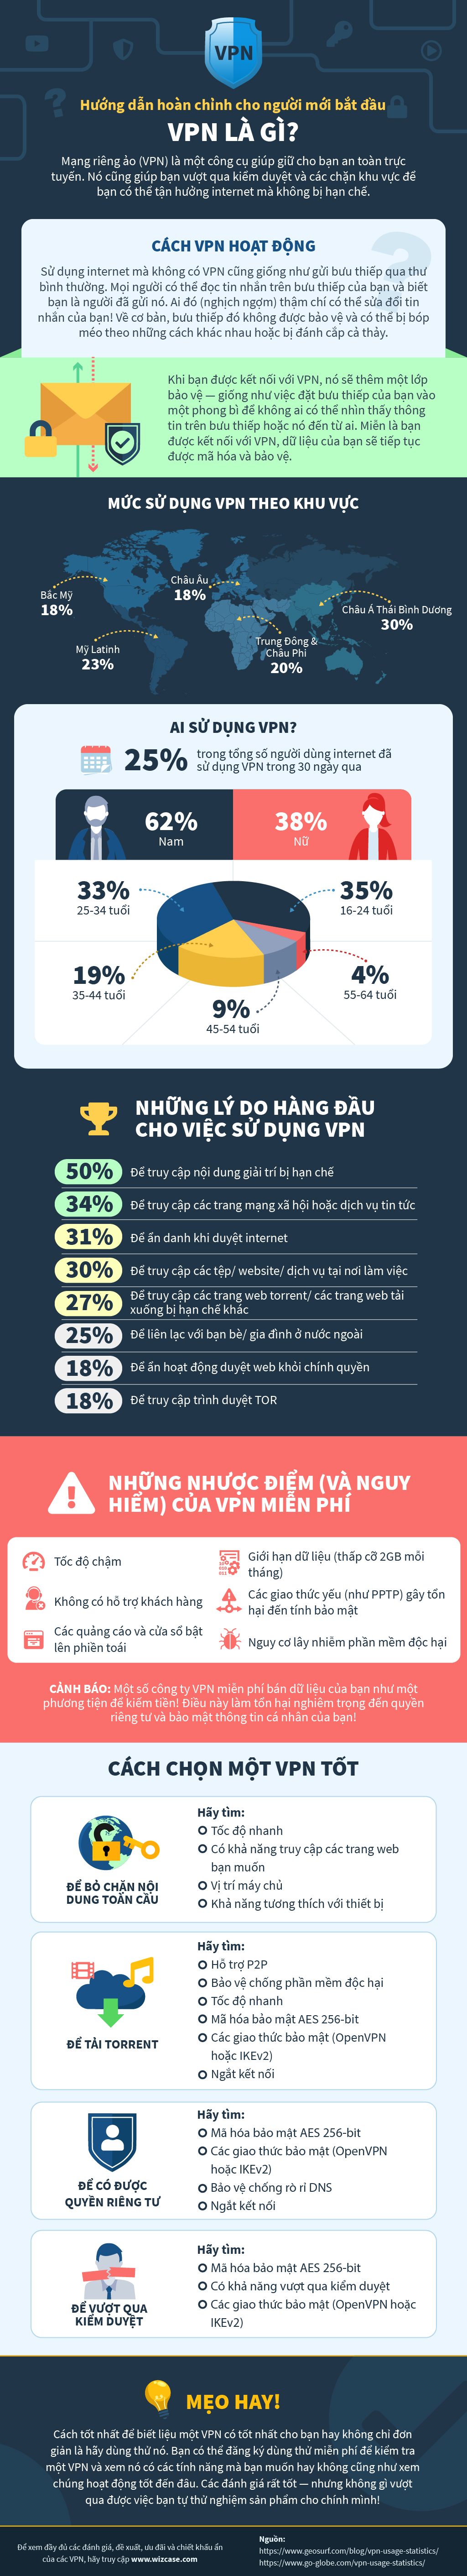 infographic guide to what is a VPN in Vietnamese